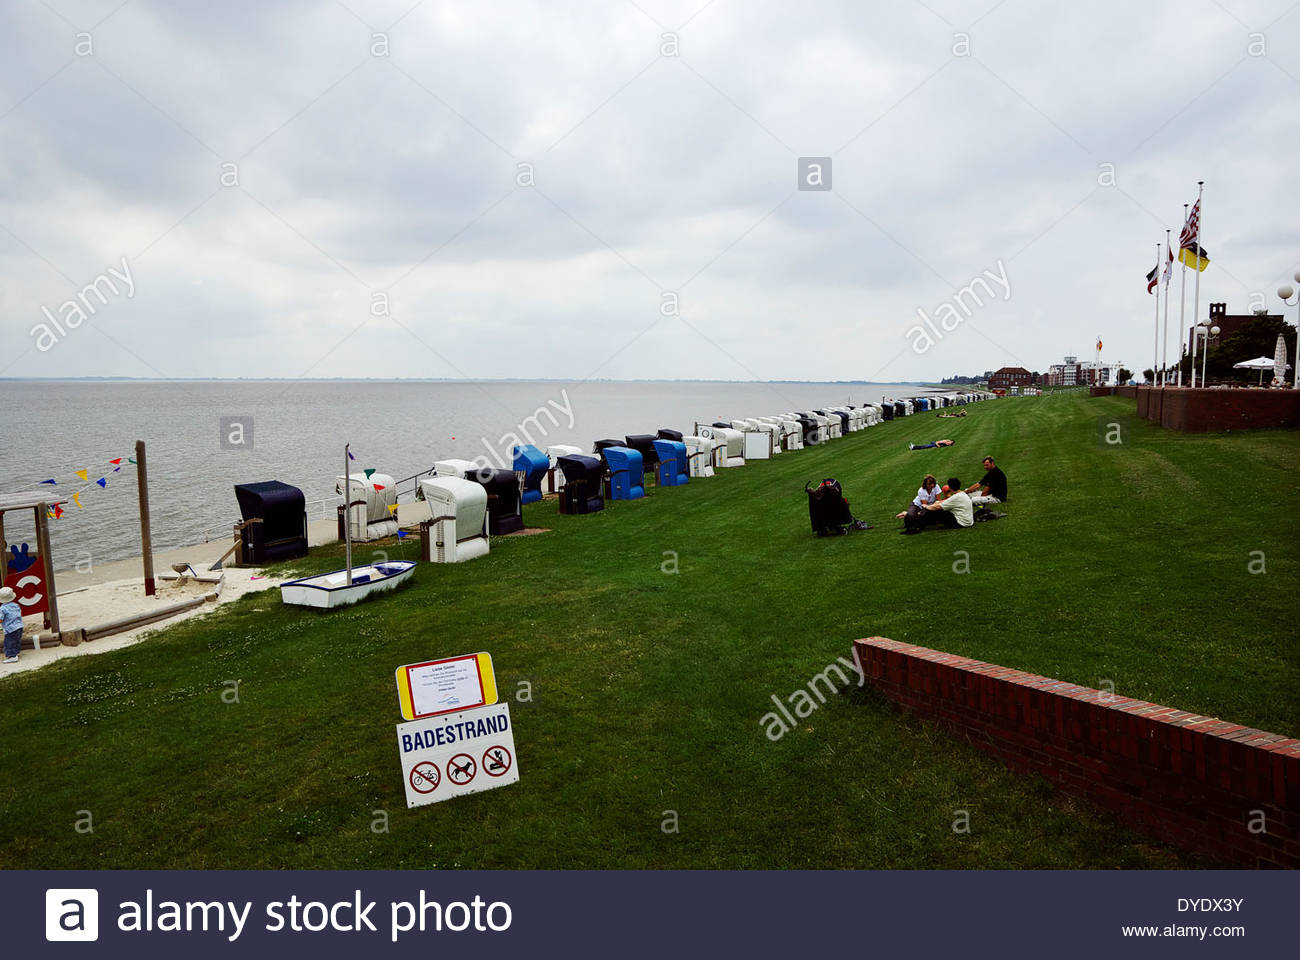 People relax on lawn and in Strandkörbe (beach chairs) on Badestrand bathing beach on Jadebusen (Jade Bight). - Stock Image